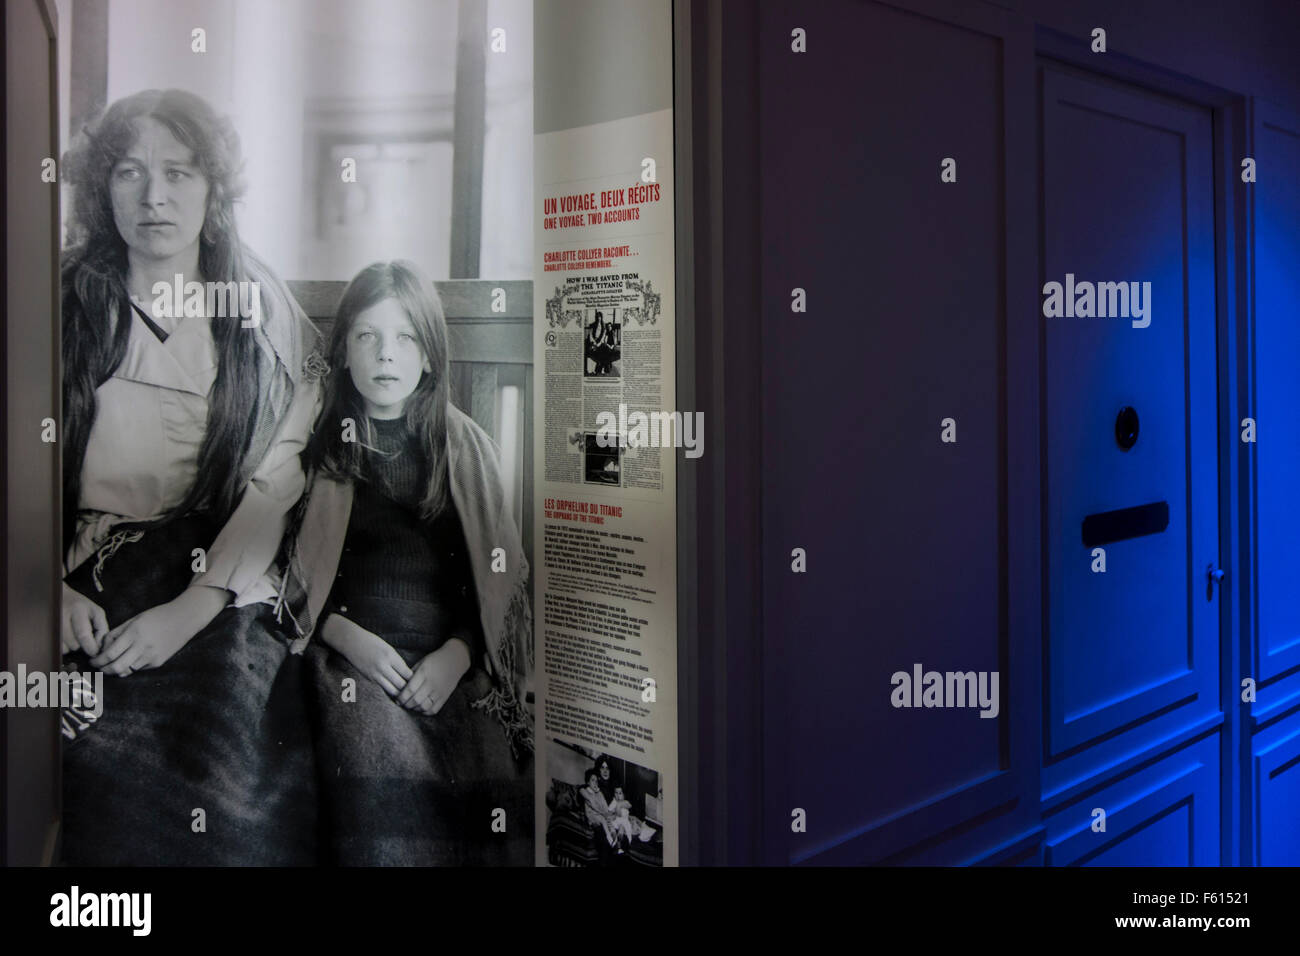 Picture of emigrants at Titanic exposition in the Cité de la Mer, maritime museum in Cherbourg, Normandy, France - Stock Image